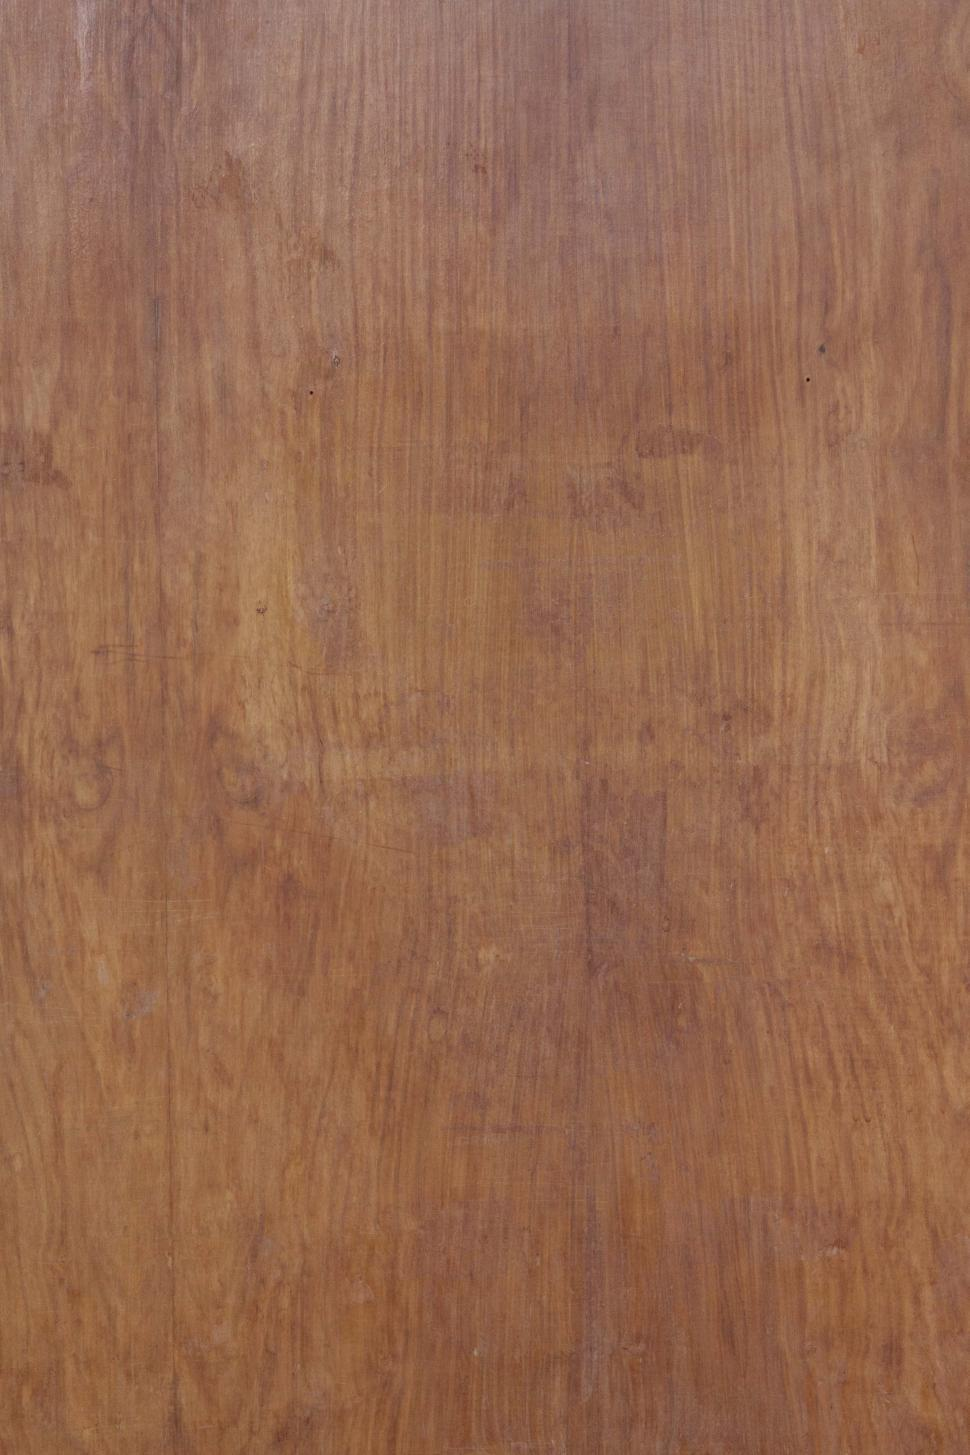 Download Free Stock HD Photo of Wooden door texture Online